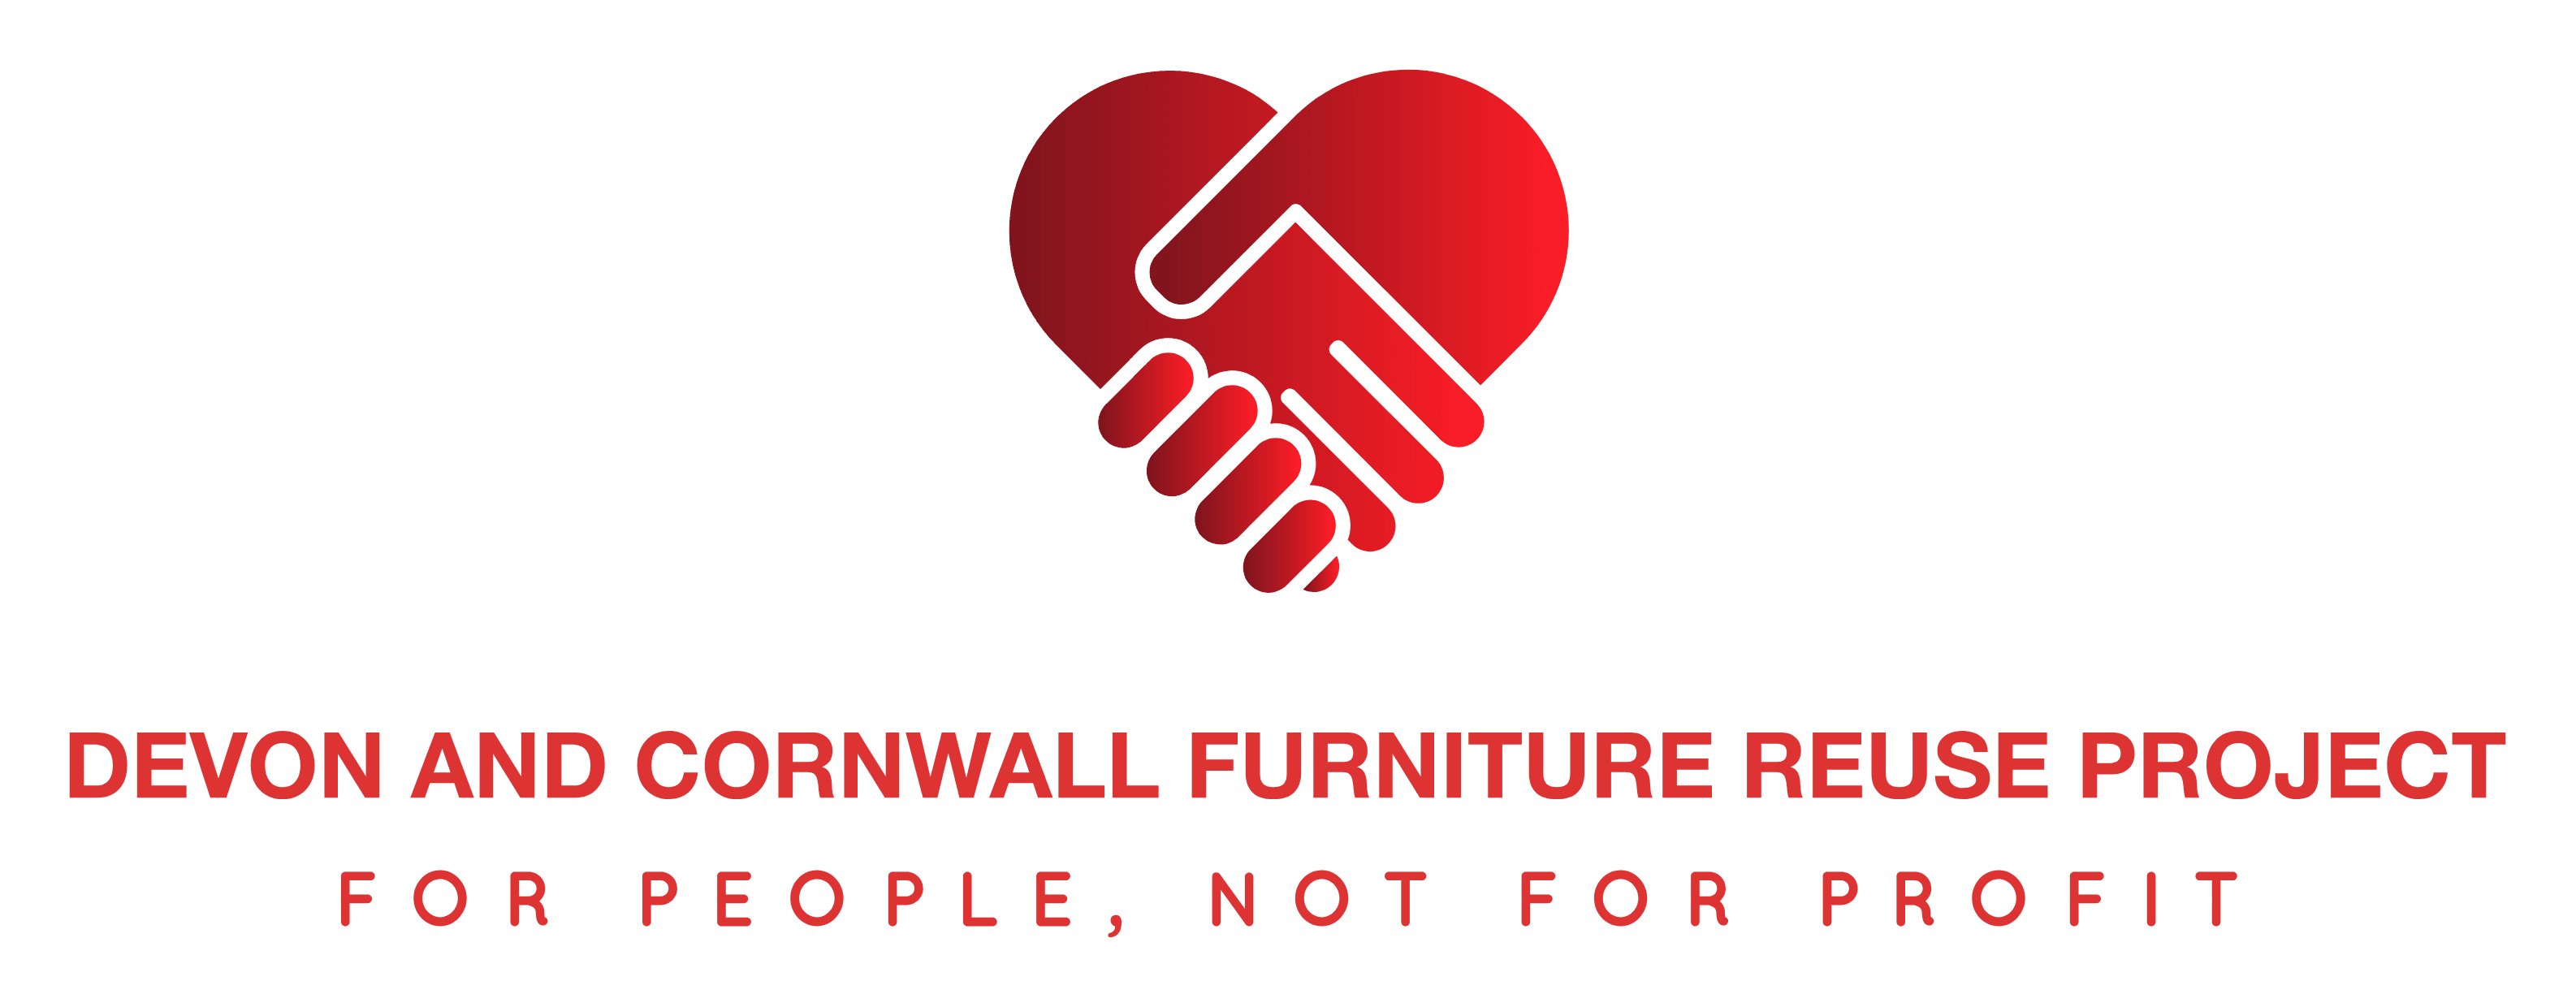 Picture of: Devon Cornwall Furniture Reuse Project For People Not For Profit